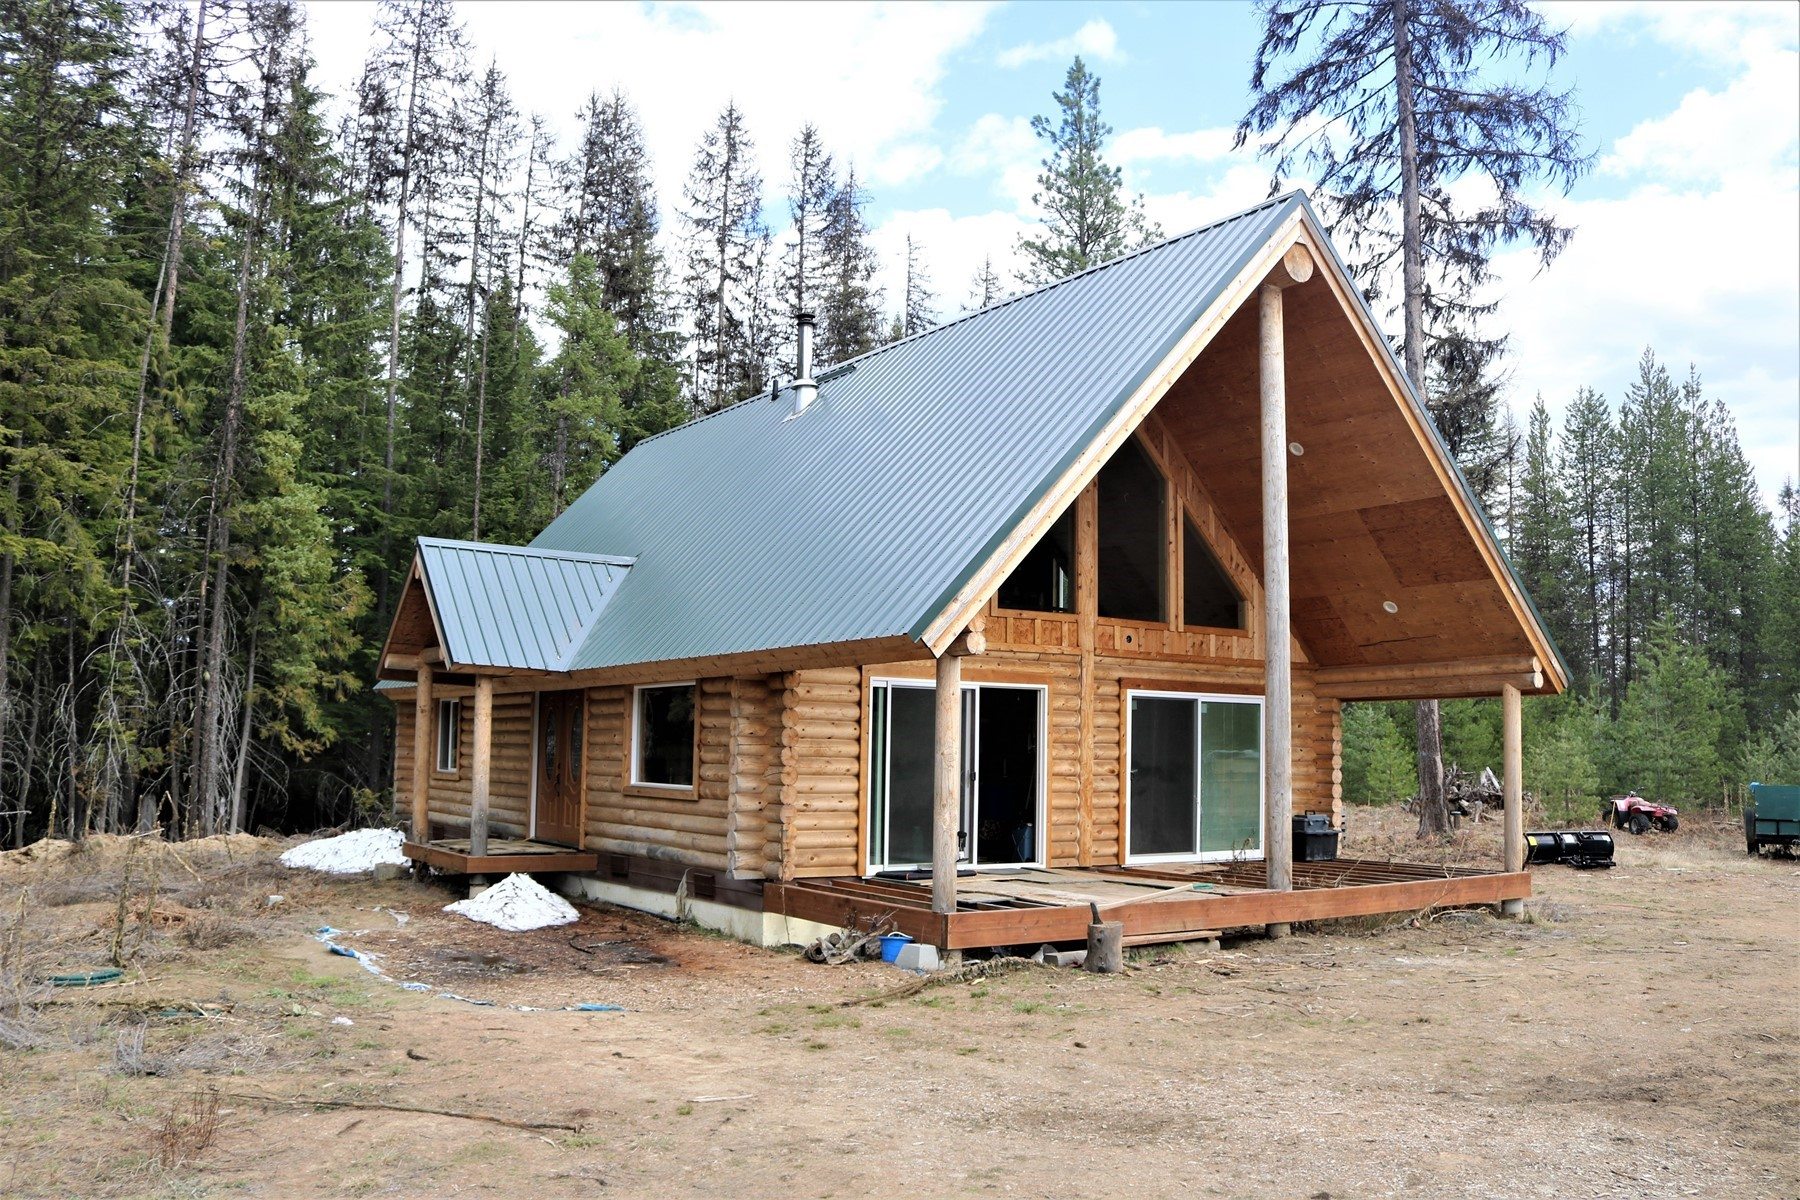 Single Family Homes for Active at Log Home on Acreage 3882 Gleason Mc Abee Rd Priest River, Idaho 83856 United States